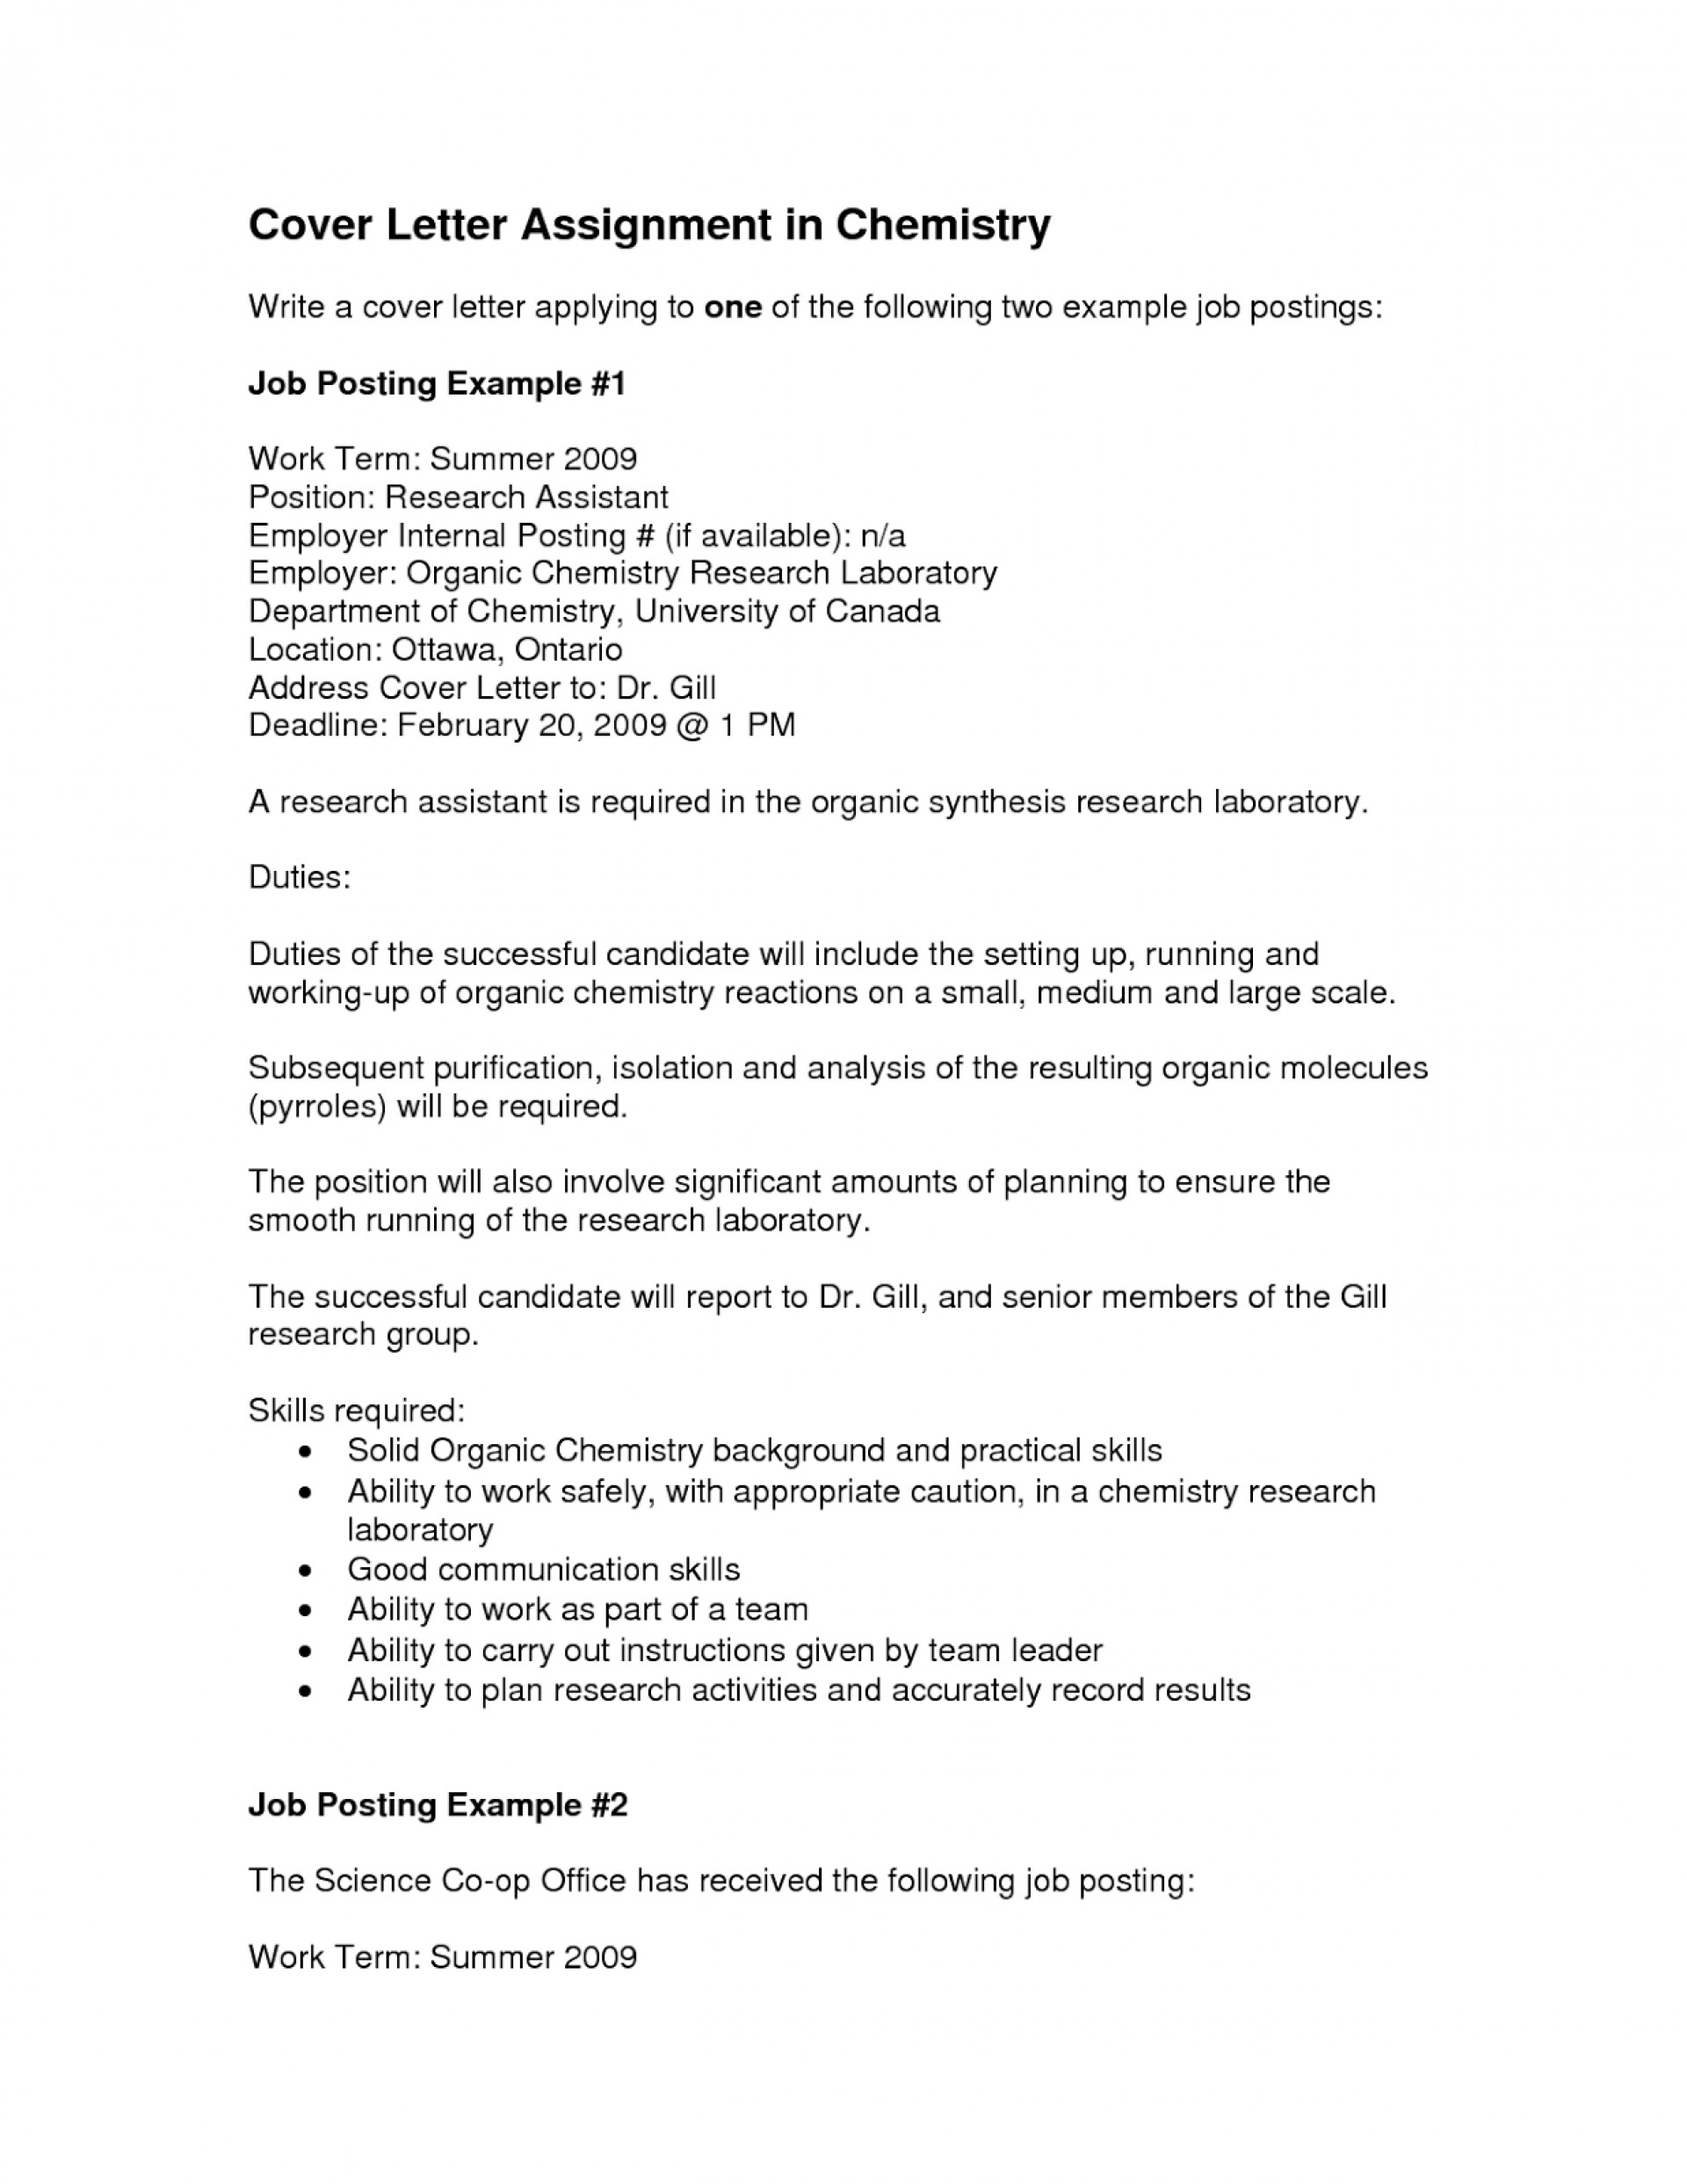 009 Ideas Of Cover Letter Sample For Researchal Business Topic Paper About Sensational Research Template 1920